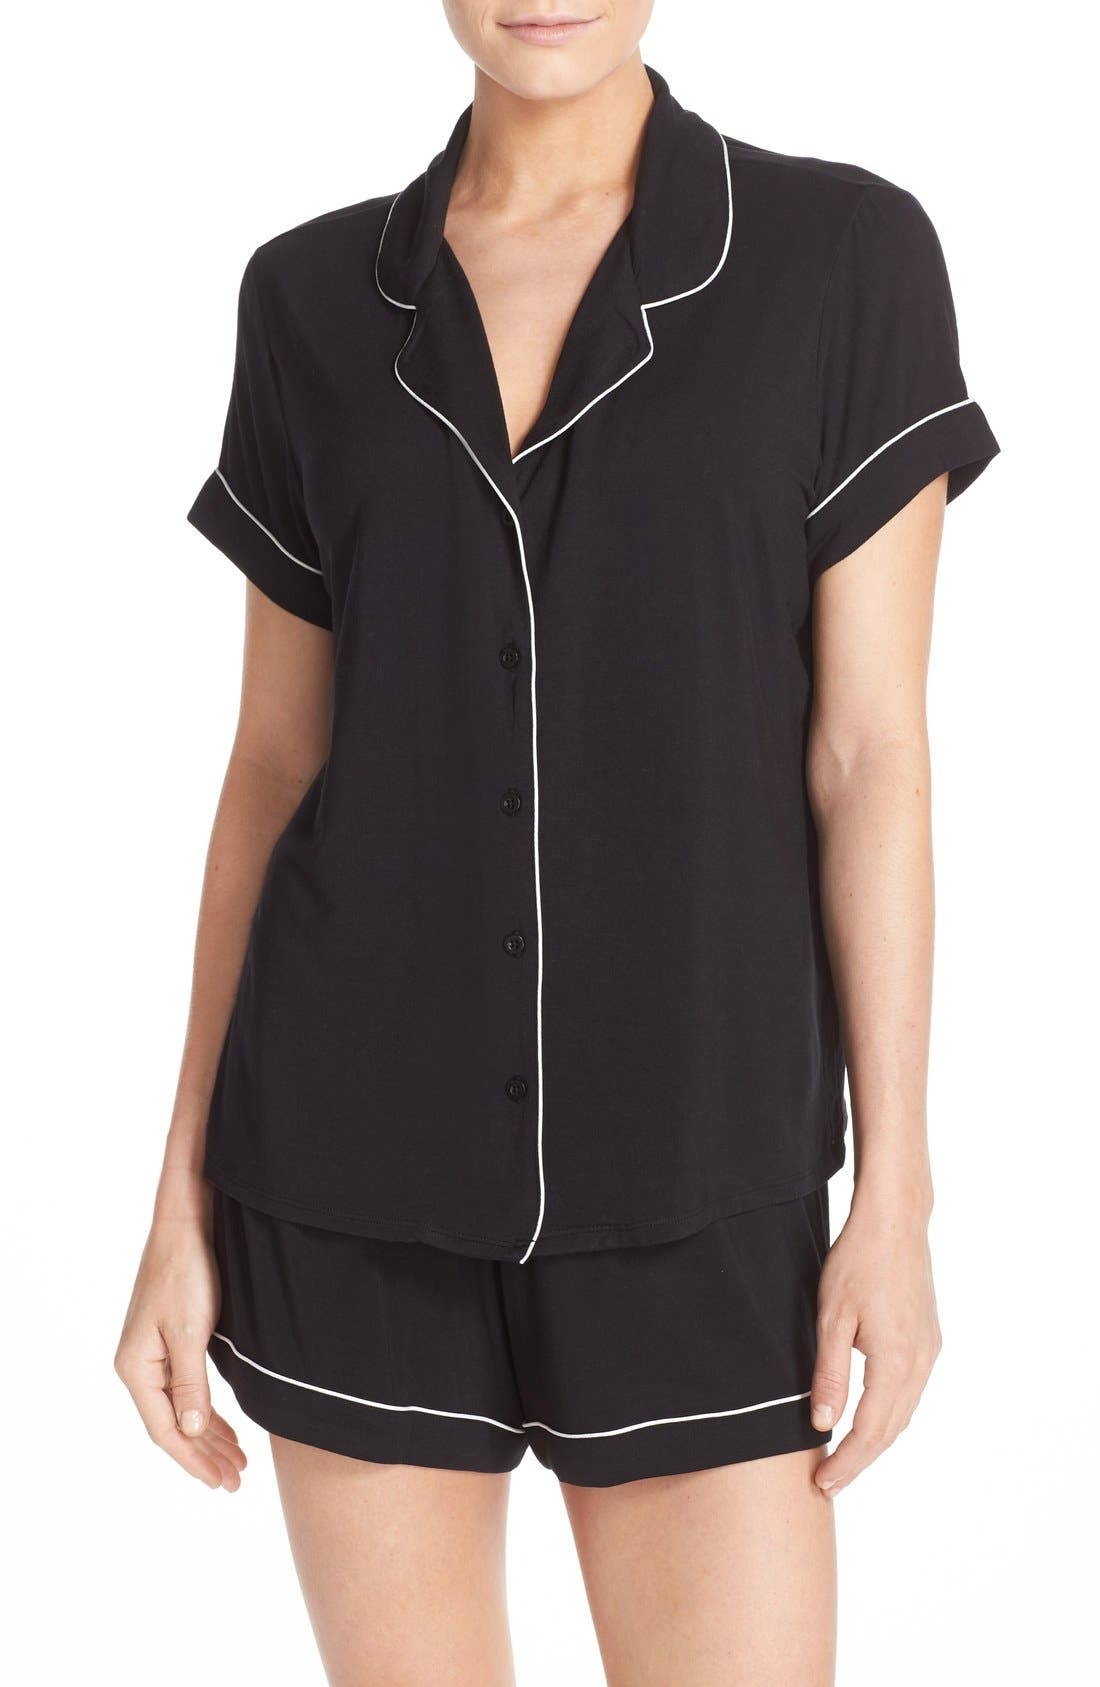 Nordstrom Lingerie 'Moonlight' Short Pajamas